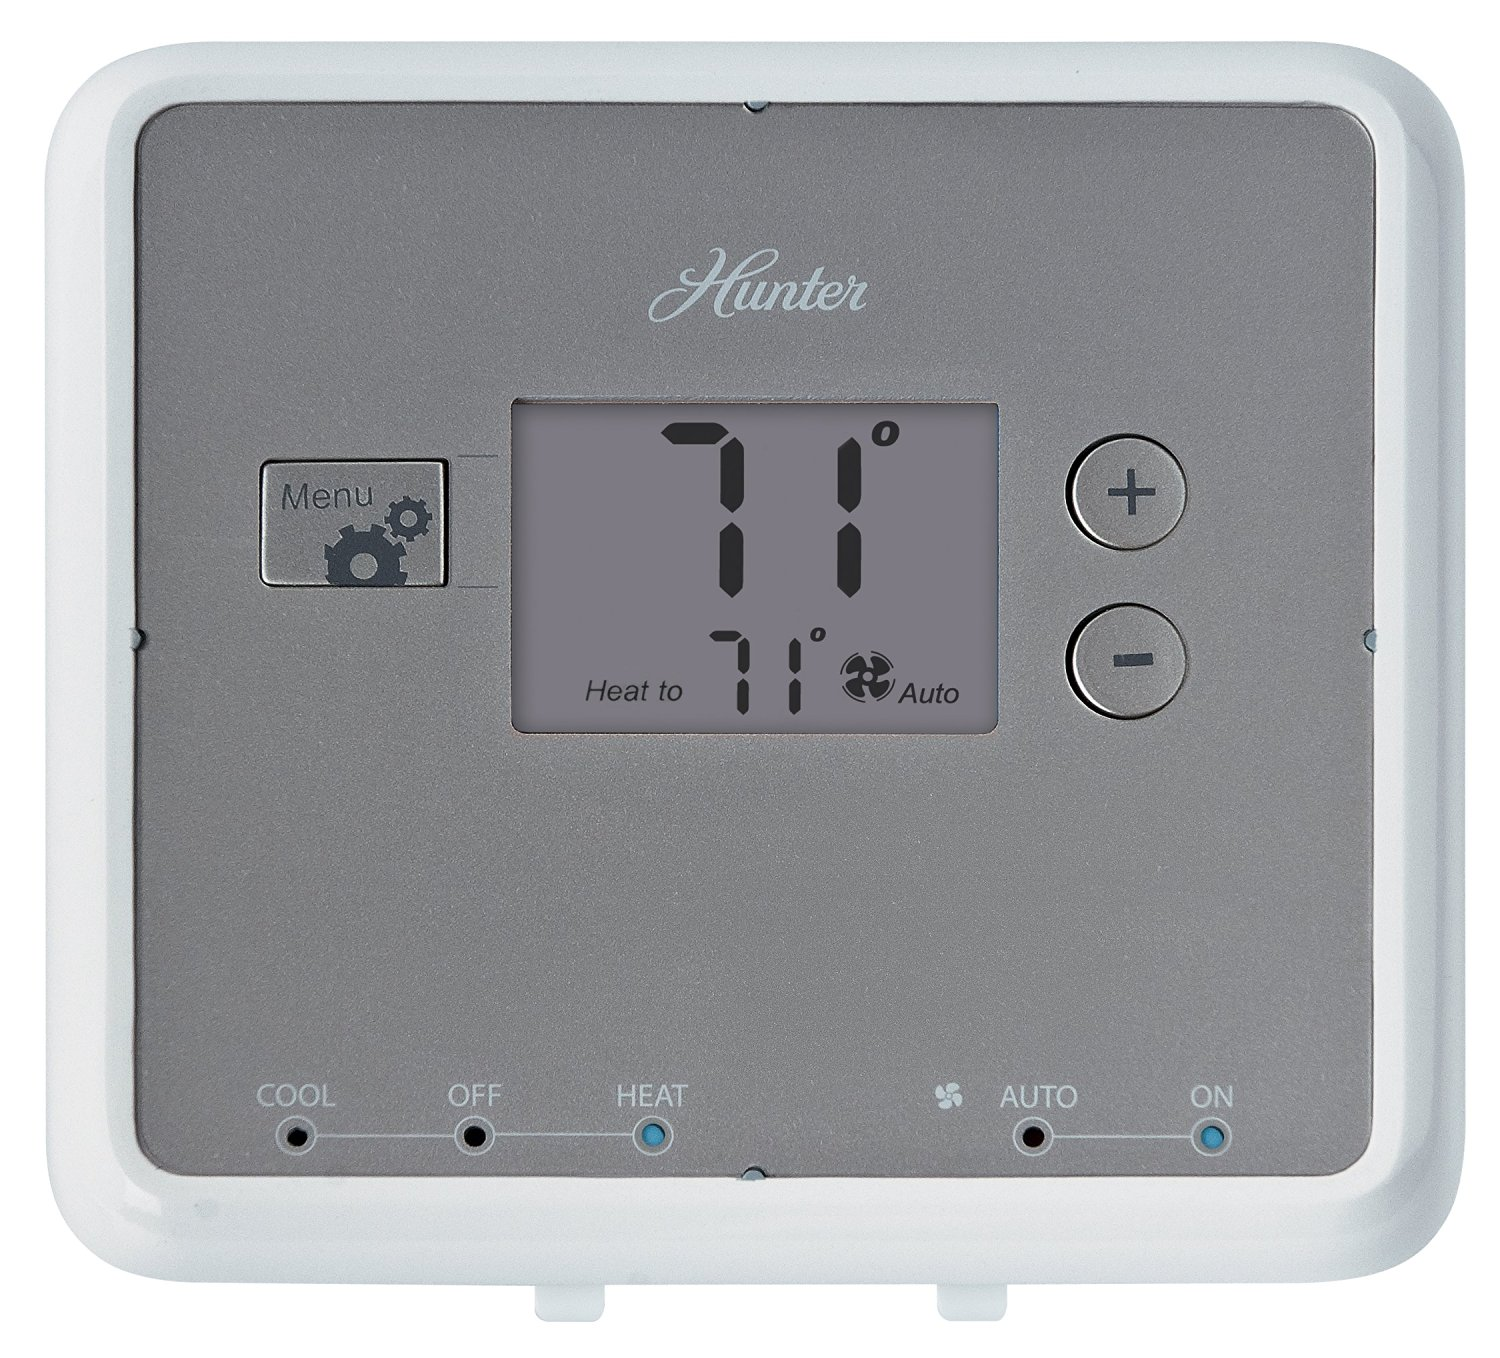 hight resolution of get quotations hunter 42122 5 minute digital non programmable thermostat white